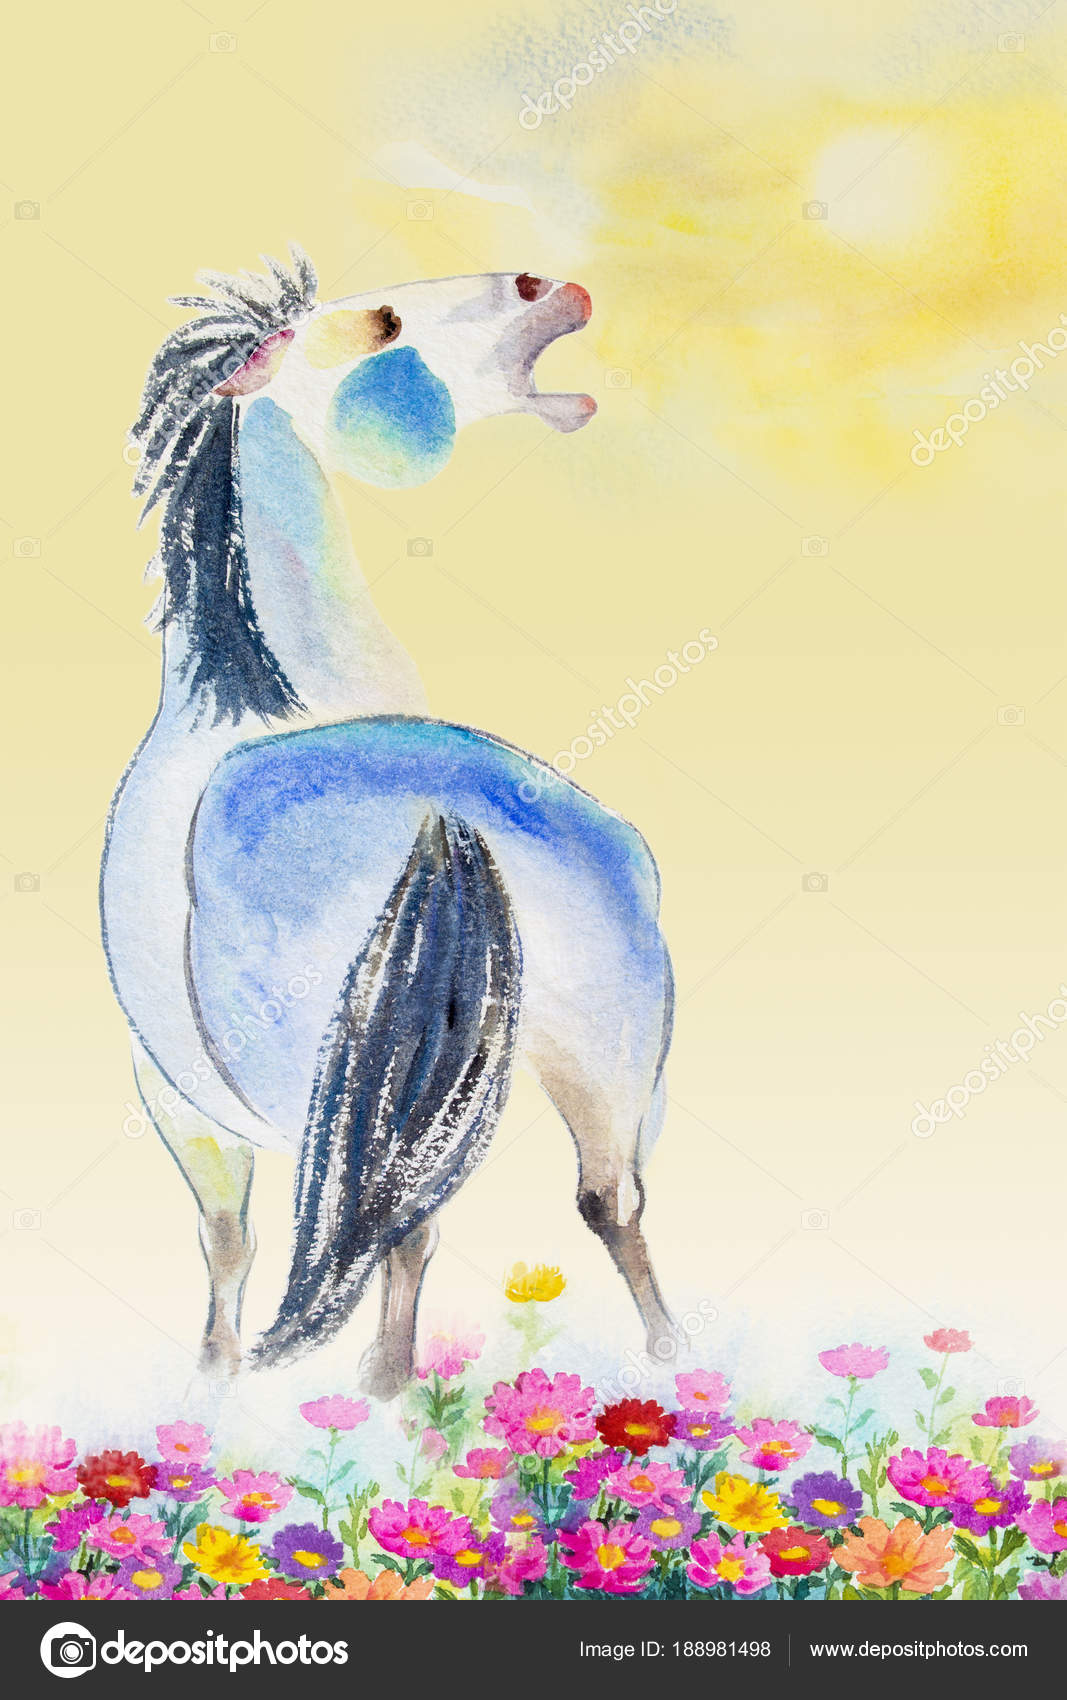 Horse Painting Colorful Watercolor Paintings Colorful Of One White Horse Stock Photo C Paint Mm 188981498